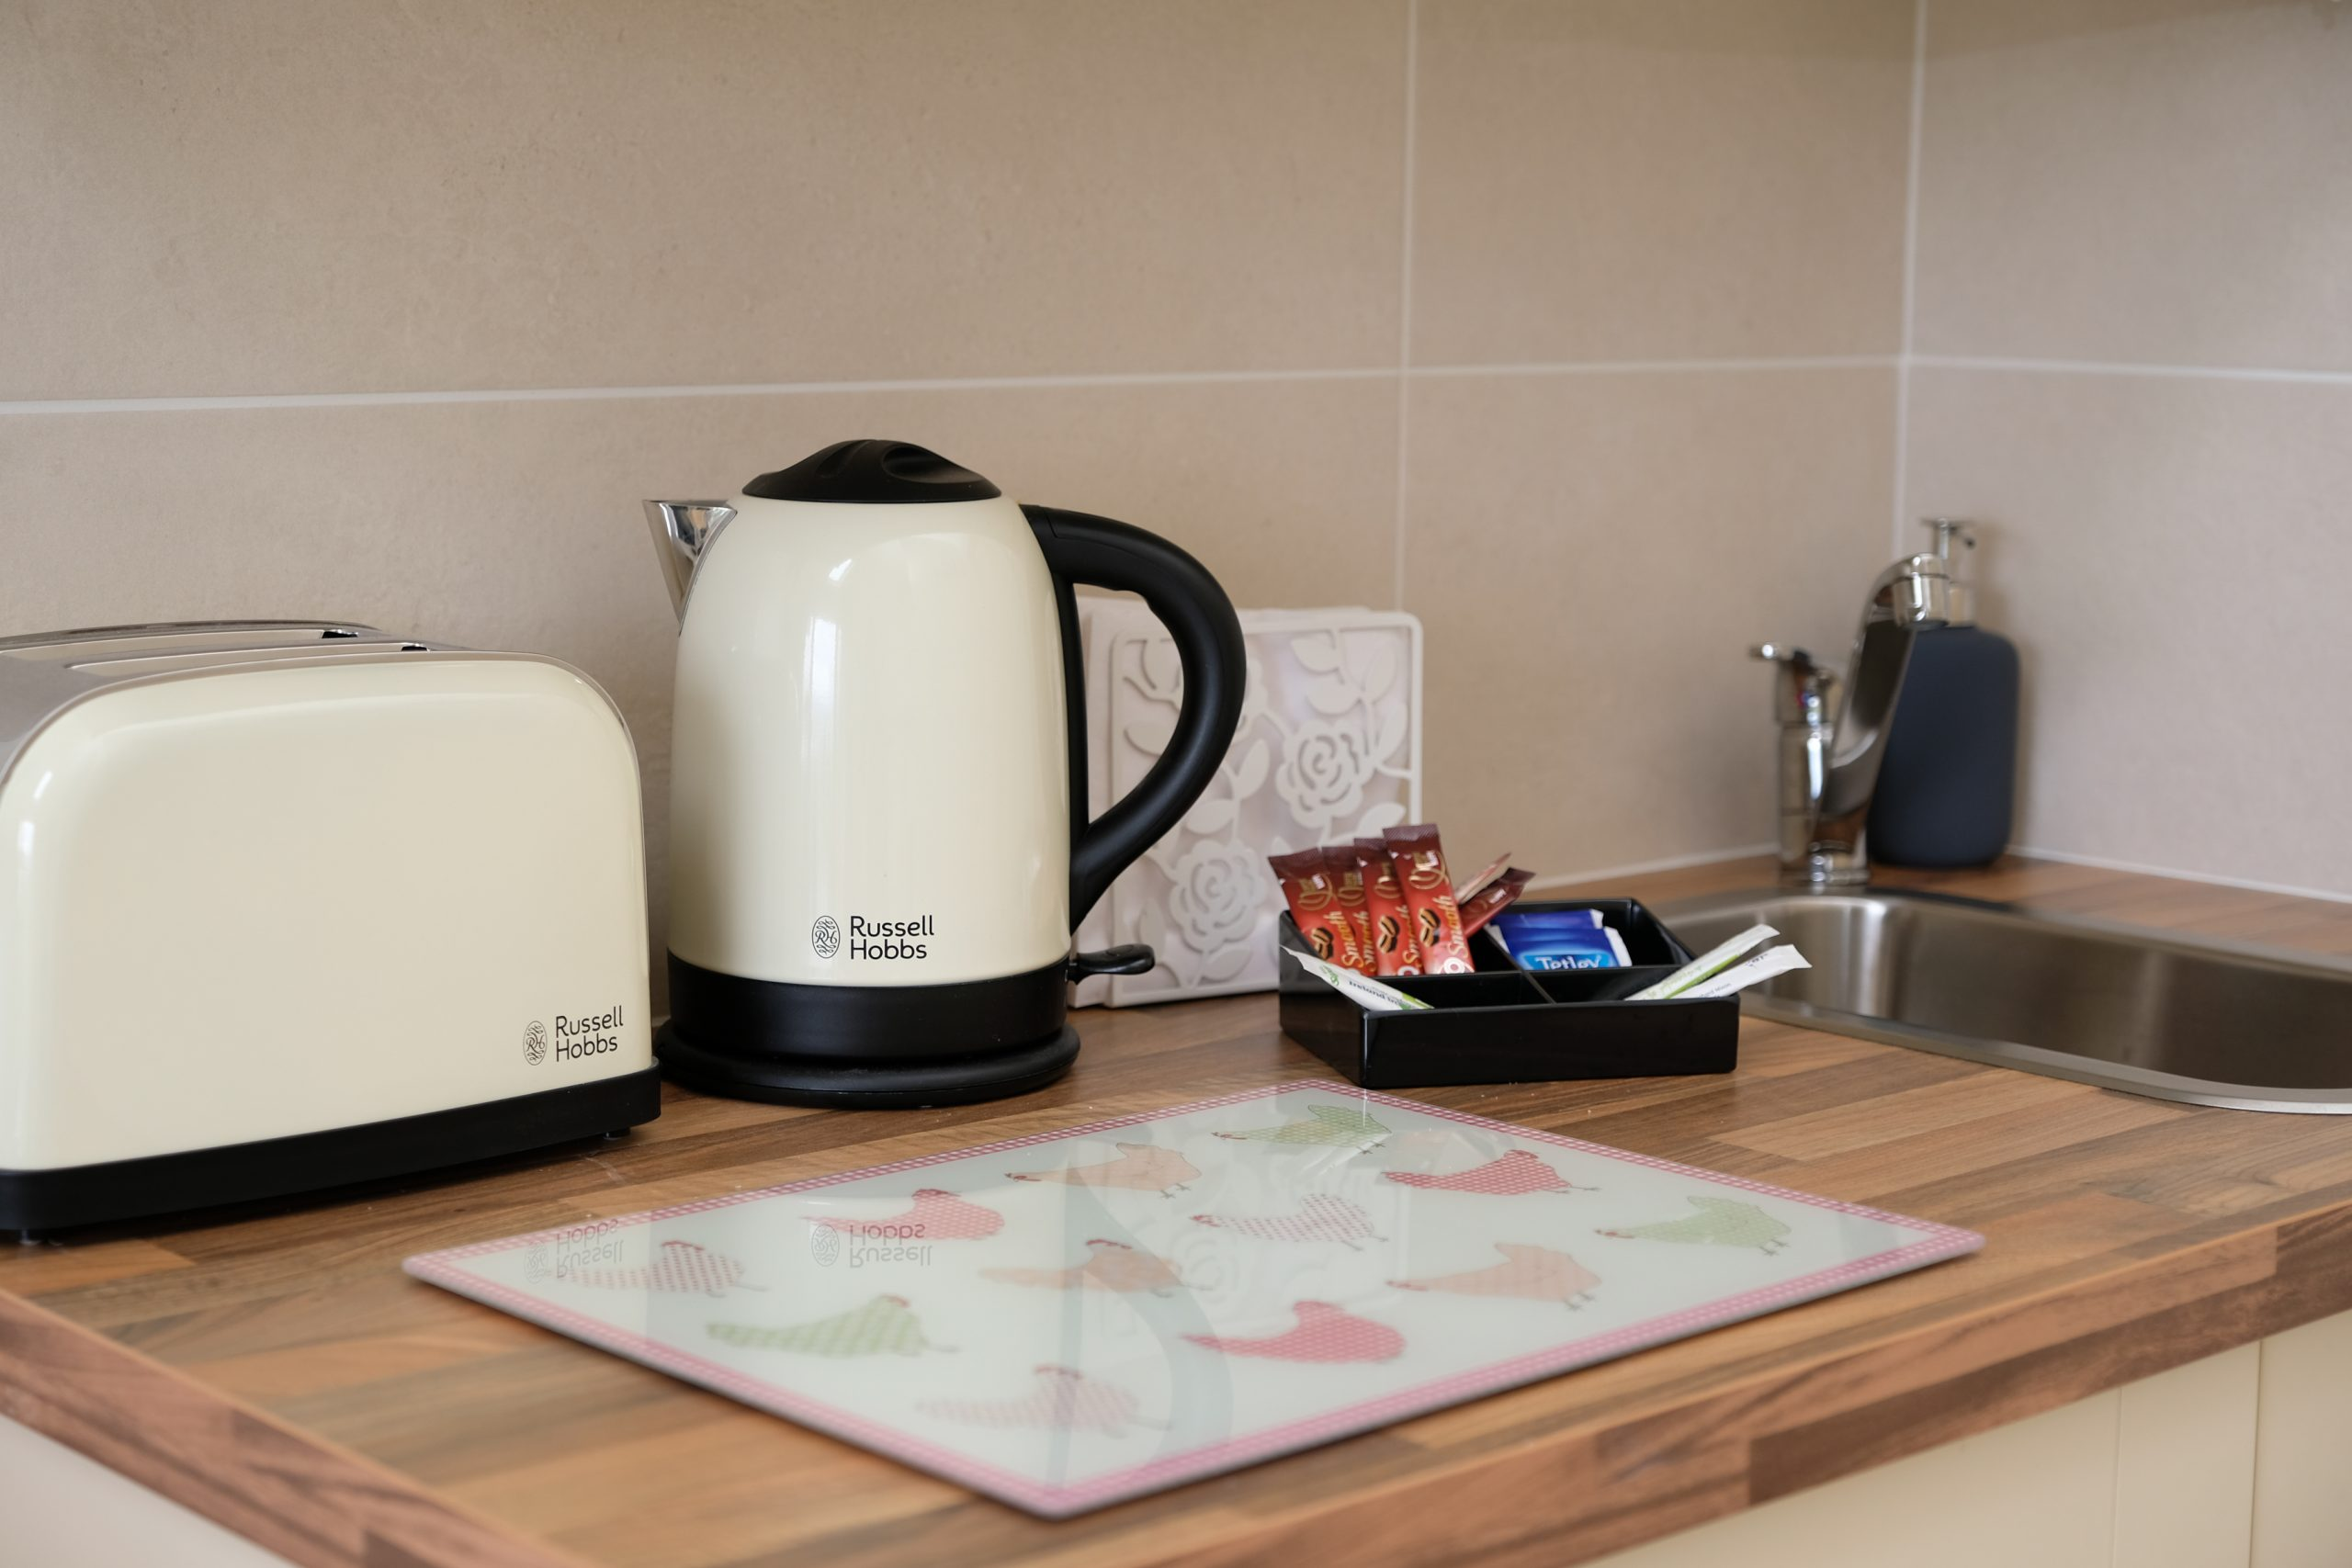 Kitching worktop with electrical appliances